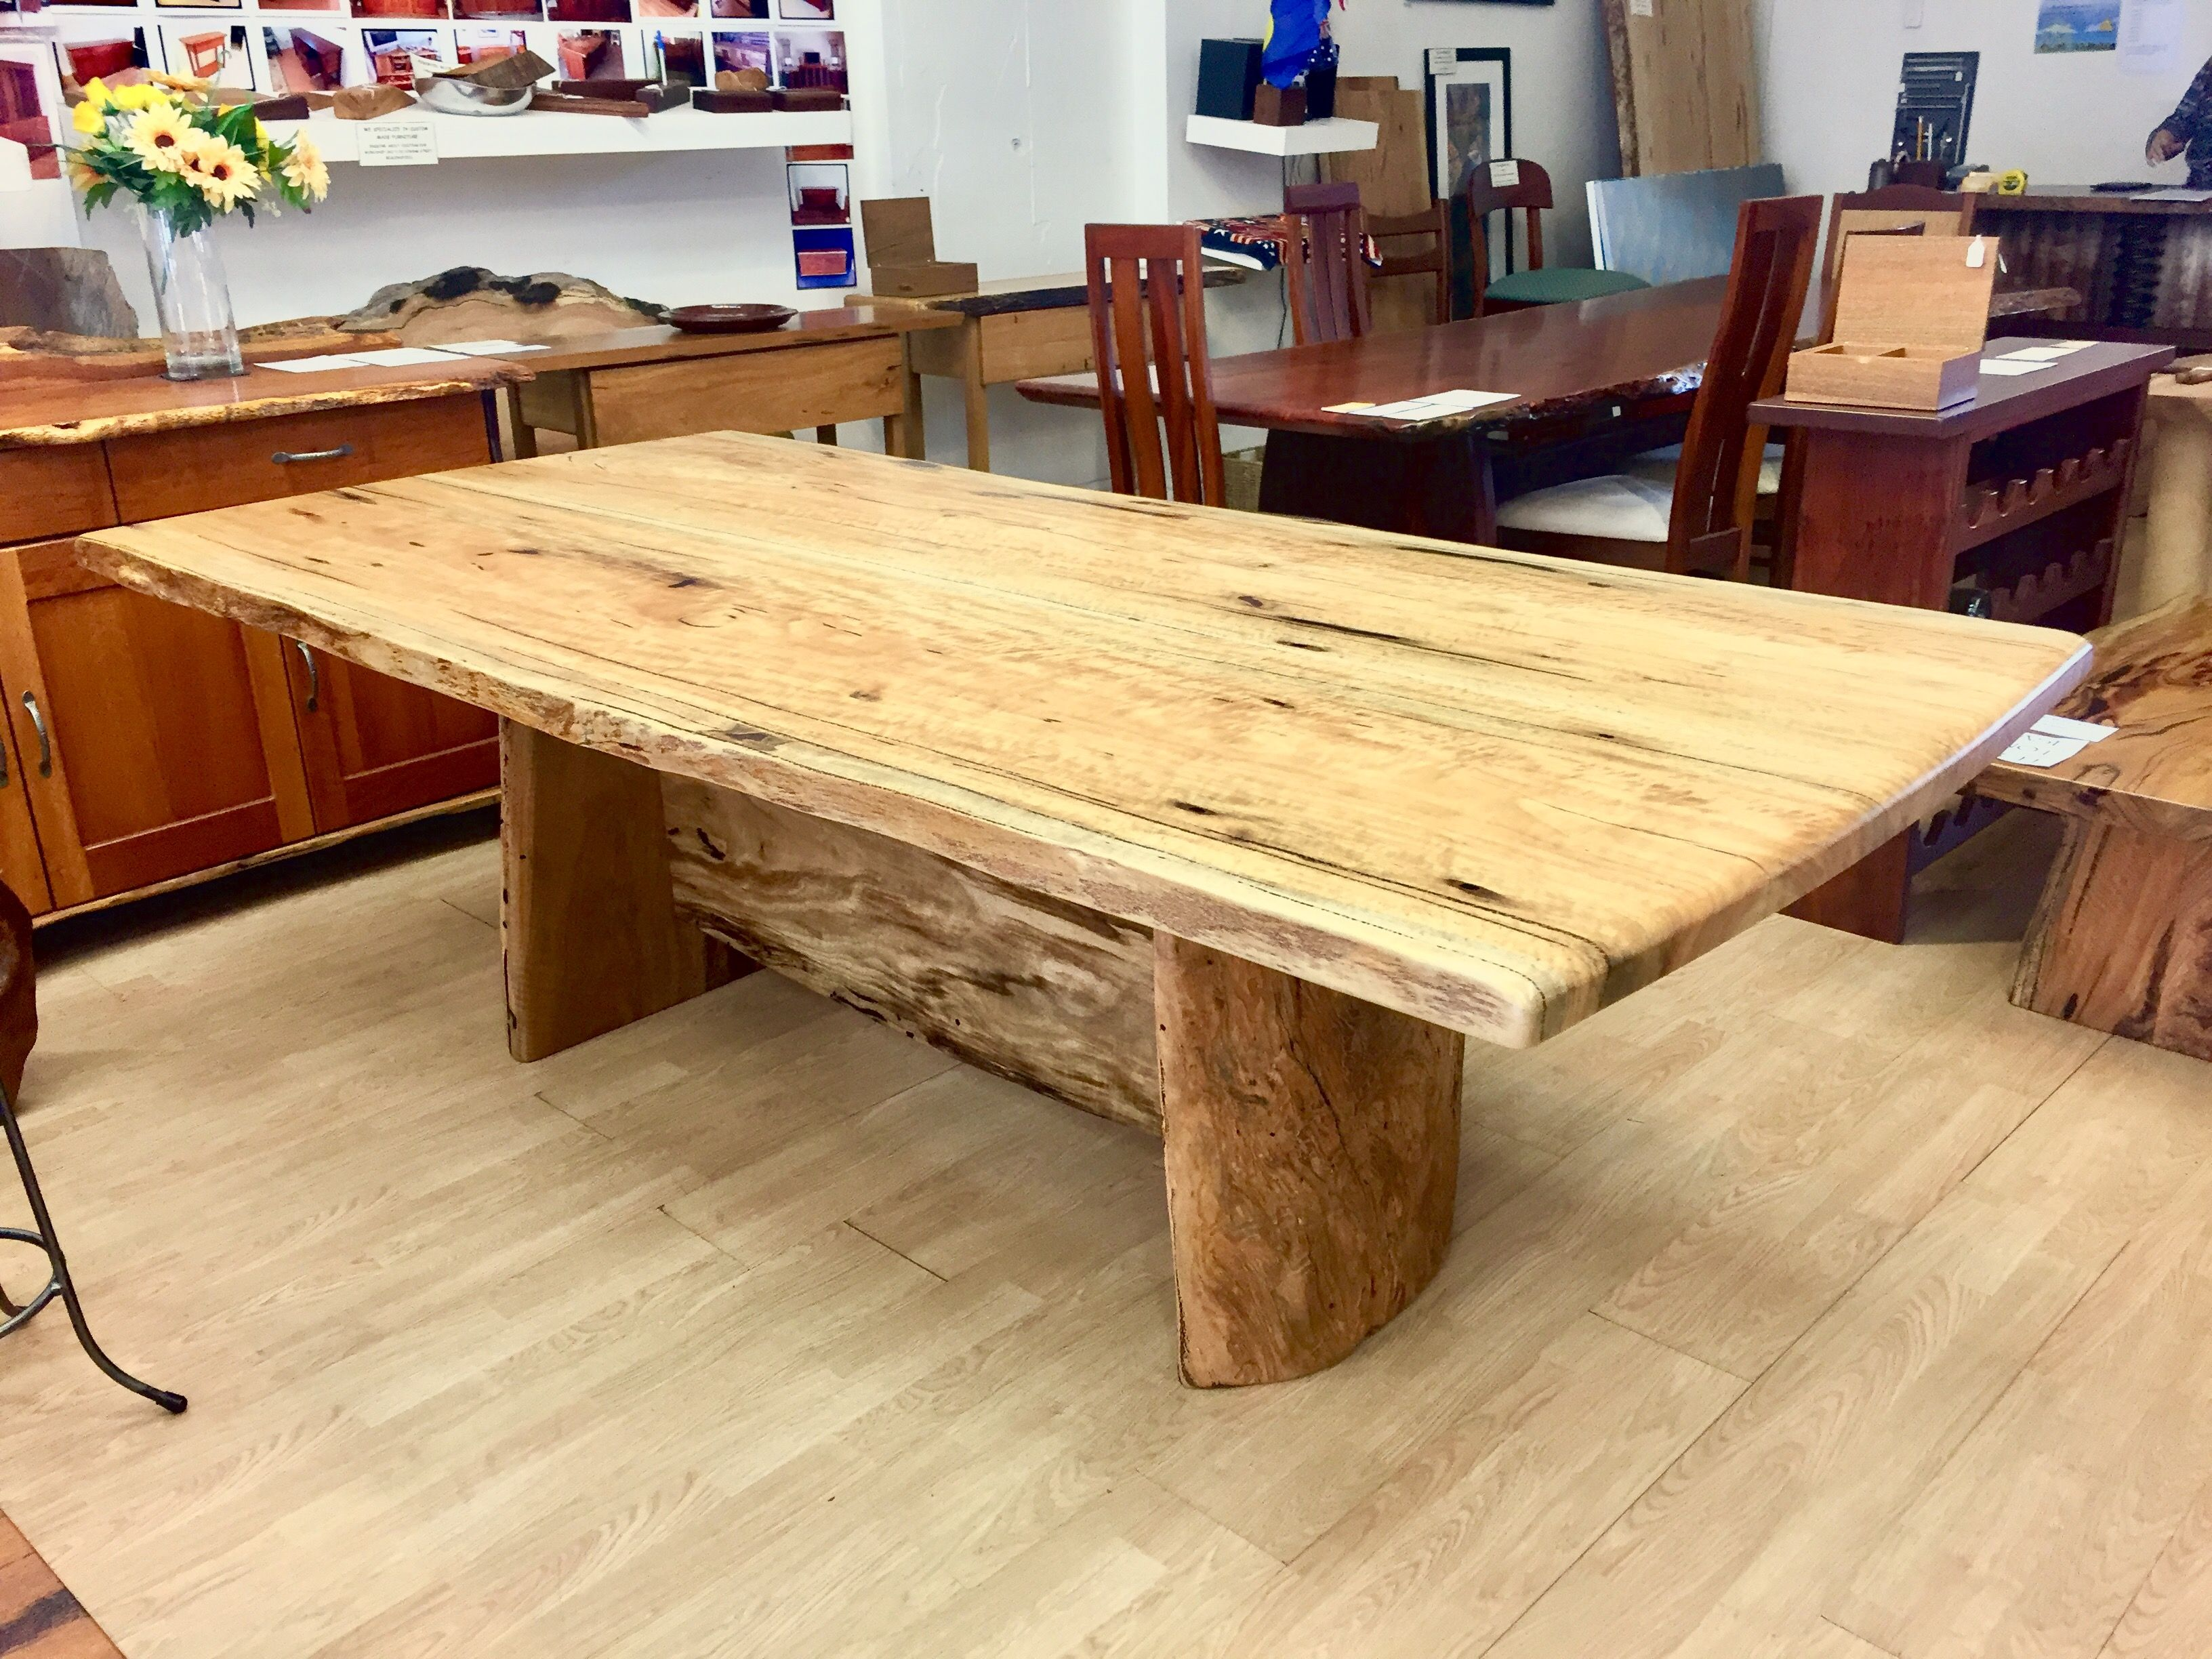 Curly Marri Dining Table 2 4 X 1 2 Wide Dining Table Dining Rustic Dining [ 2448 x 3264 Pixel ]